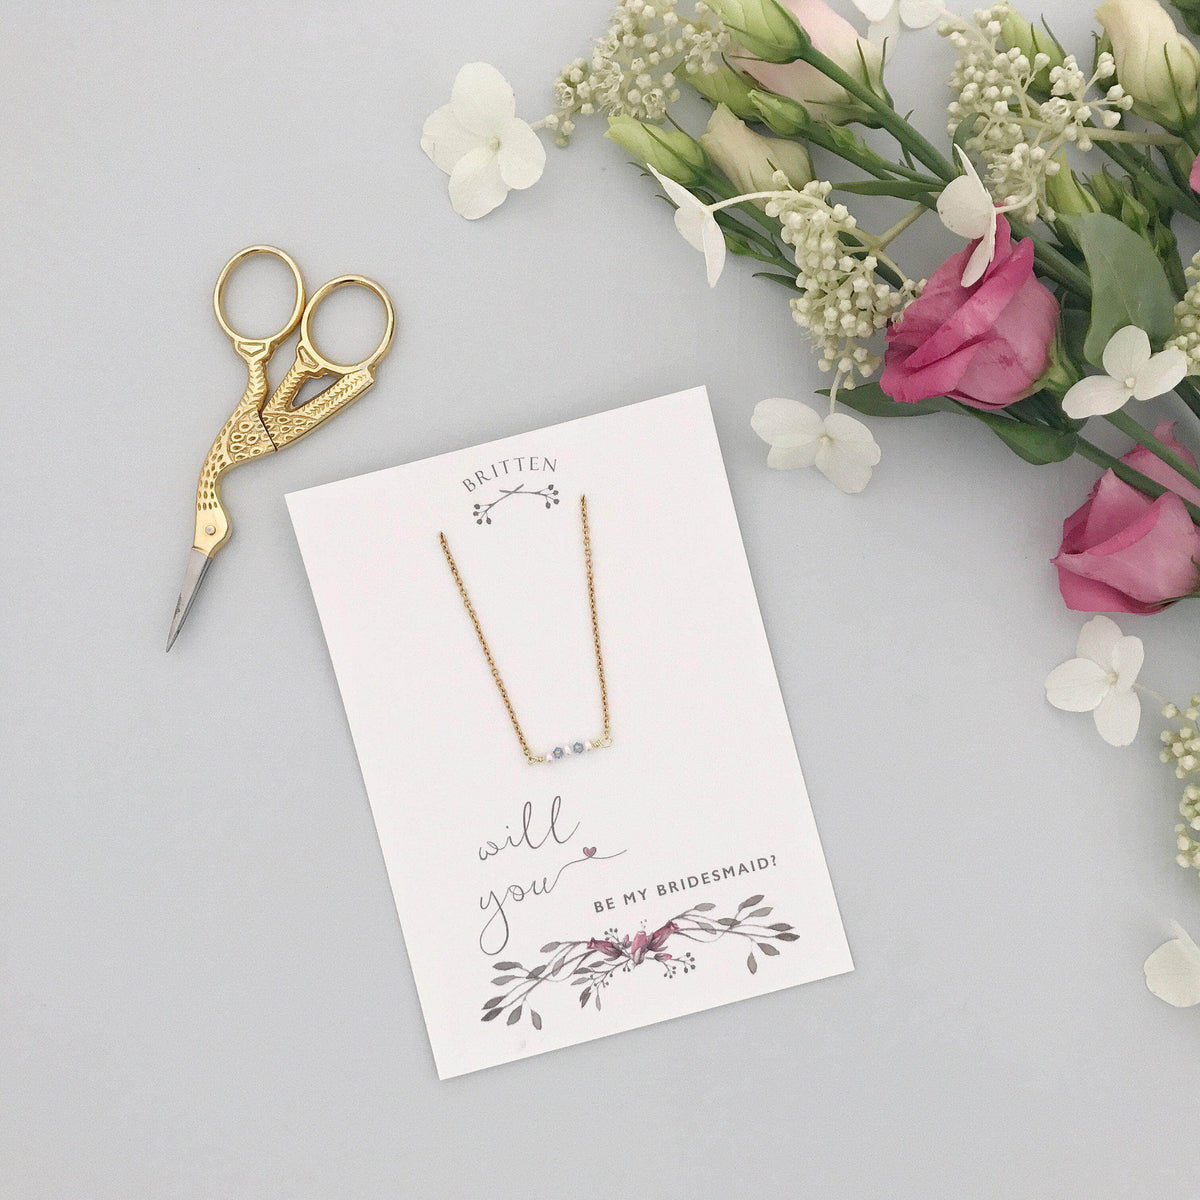 Bridesmaid Gift Gold Will you be my bridesmaid gift necklace - 'Mollie' in gold